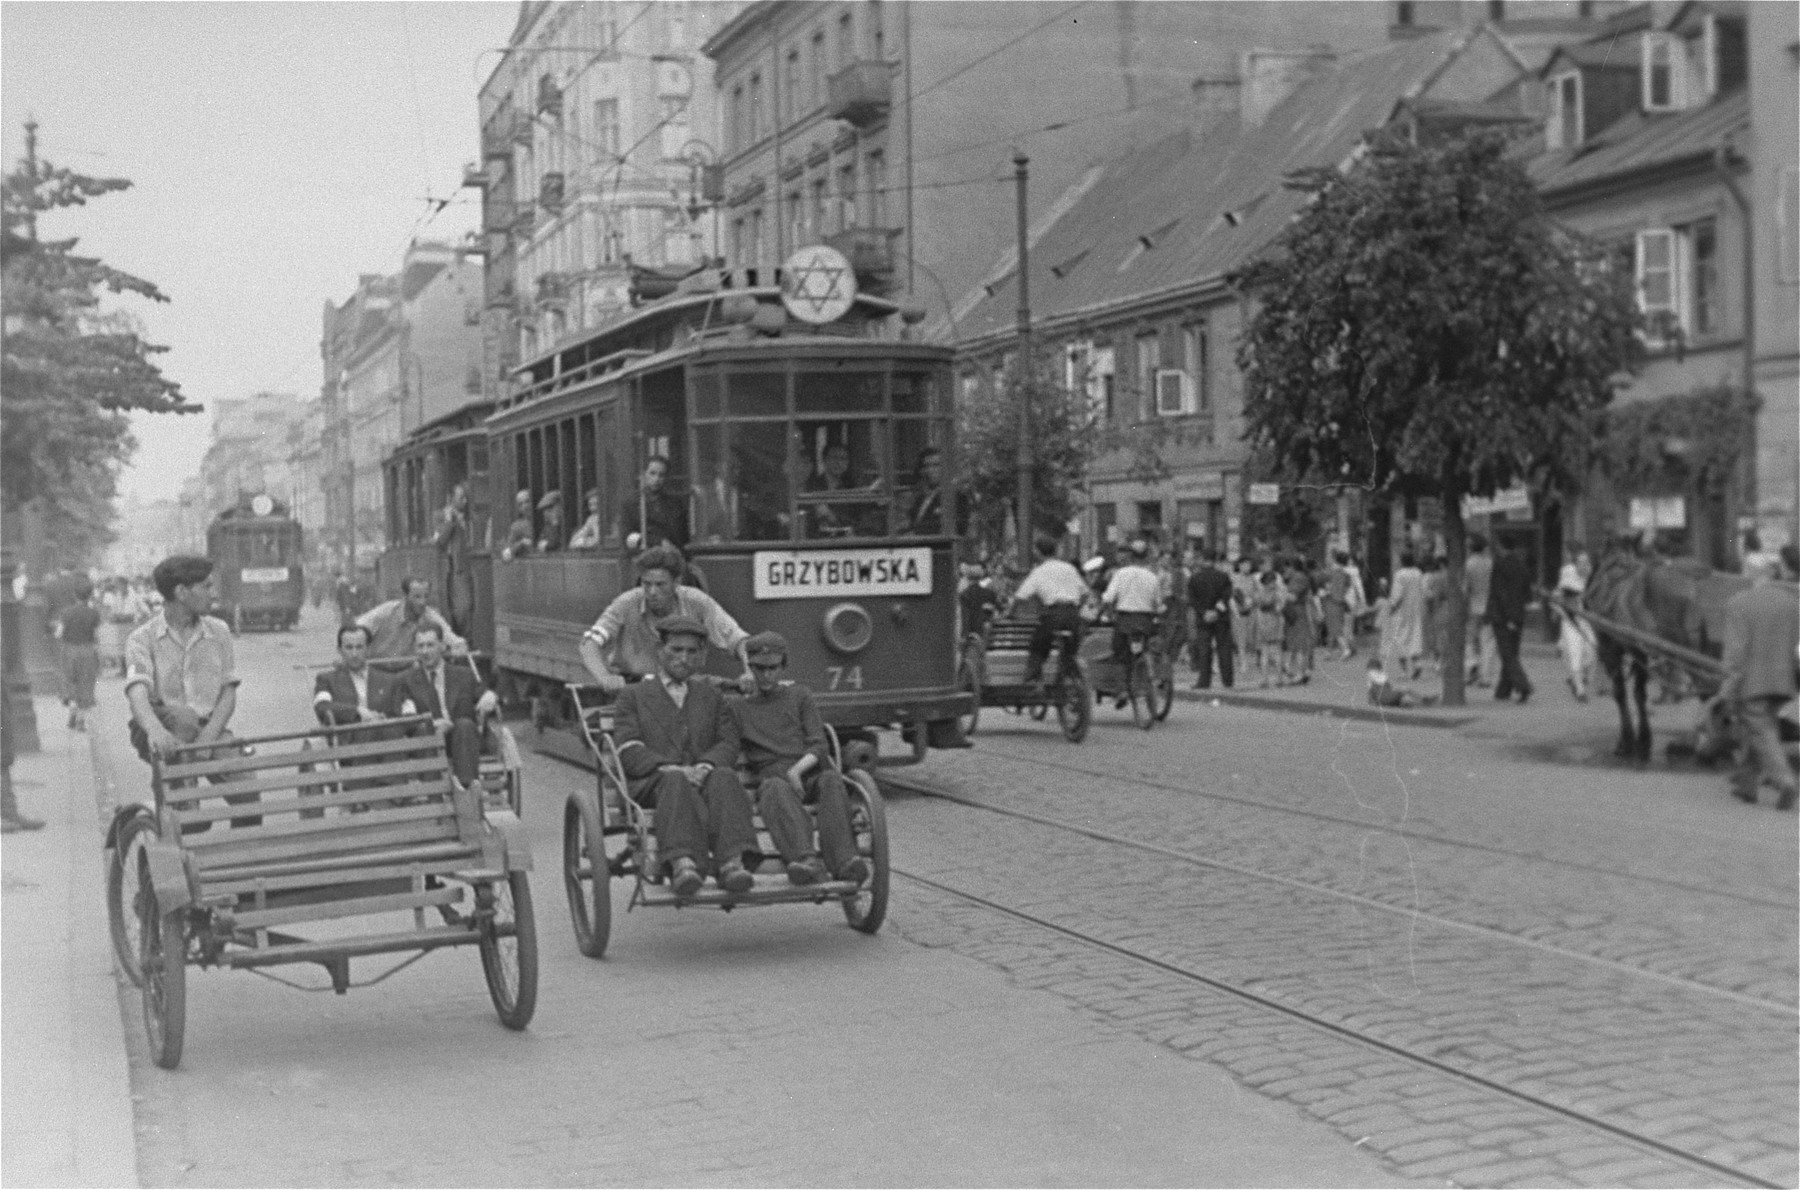 Rickshaws and streetcars move through a major street in the Warsaw ghetto.